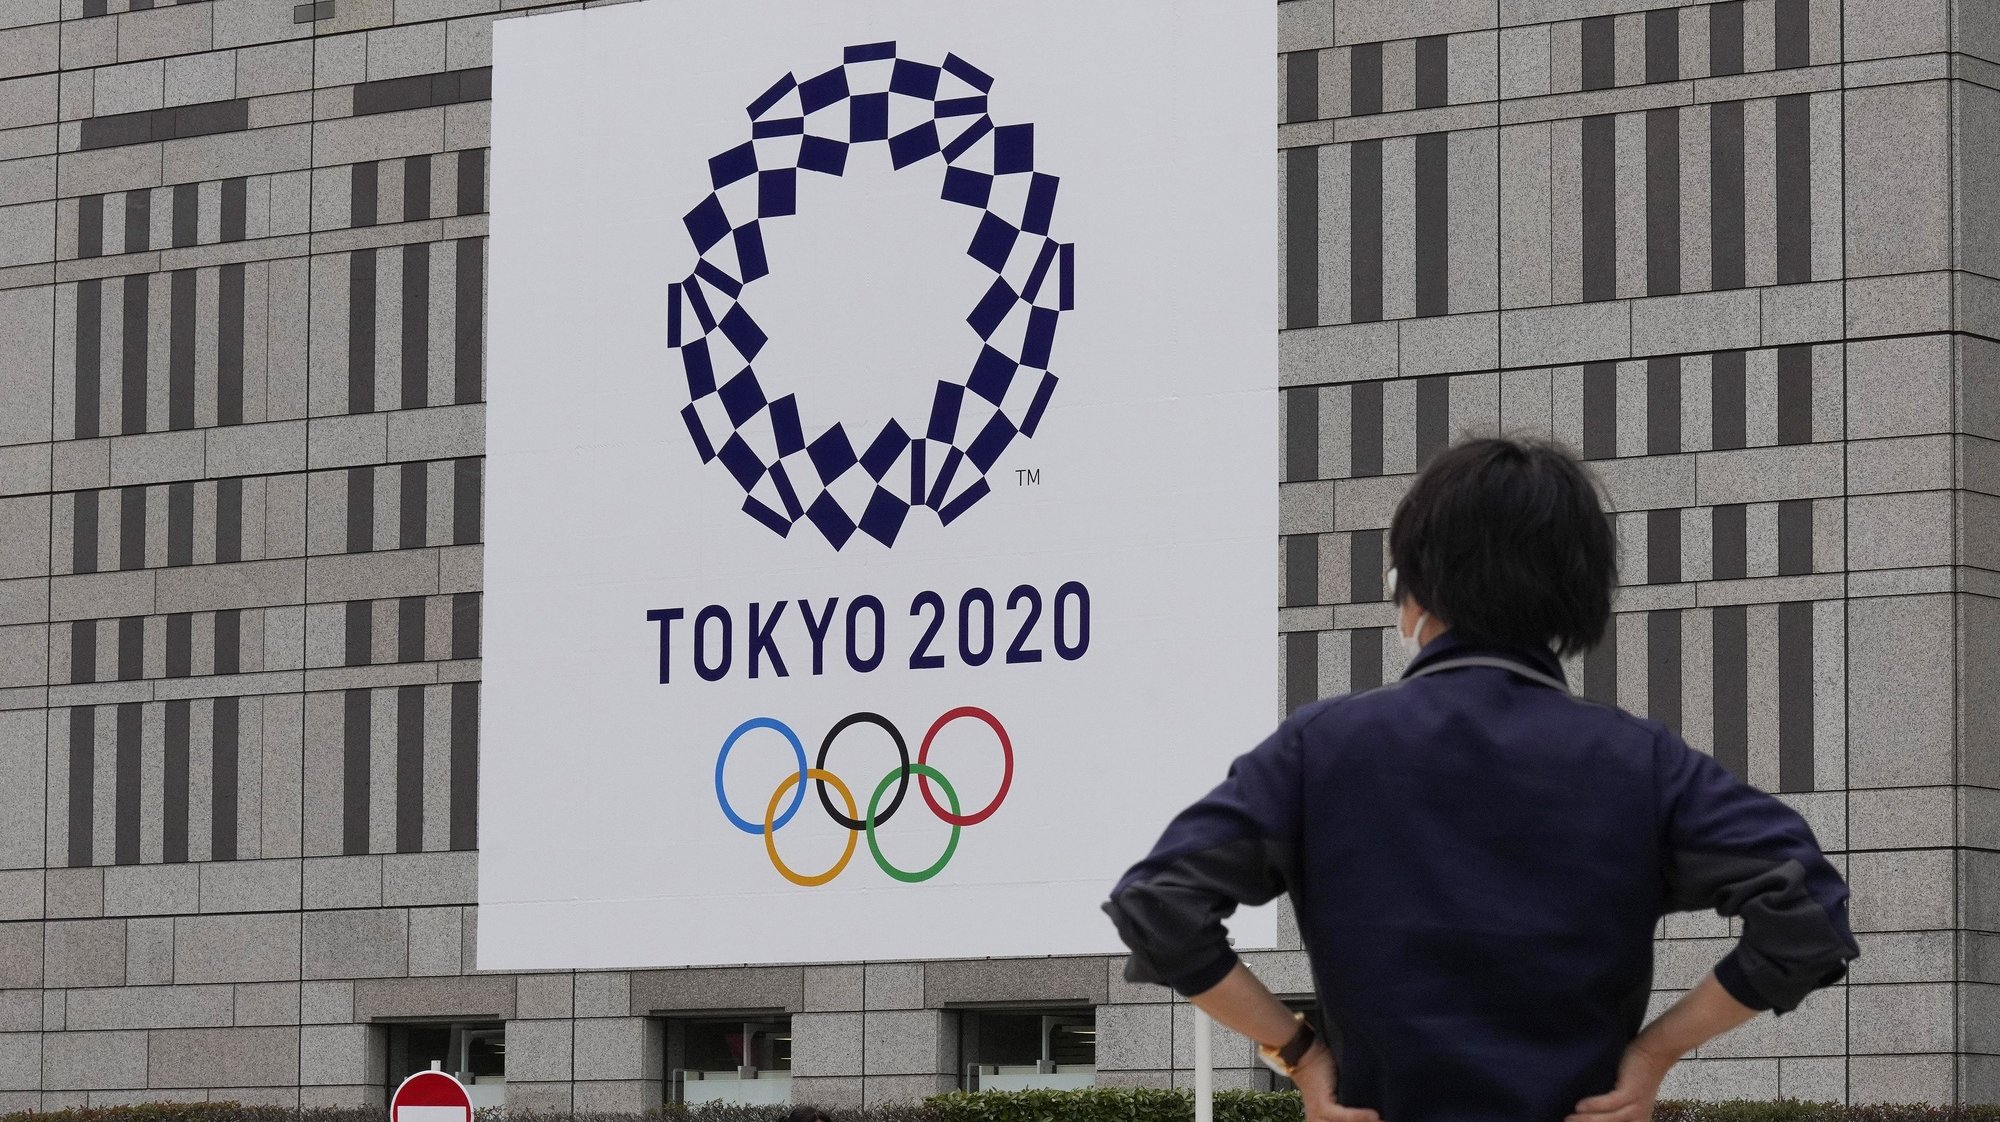 epa09293039 Pedestrians walk past the logo of the Tokyo 2020 Olympic Games decorated on the wall of Tokyo Metropolitan Government office building, Japan, 22 June 2021. Tokyo and Japan will mark one month before the opening of the Tokyo 2020 Olympic Games on 23 June 2021. The Summer Games was rescheduled from 2020 due to COVID-19 Coronavirus pandemic.  EPA/KIMIMASA MAYAMA